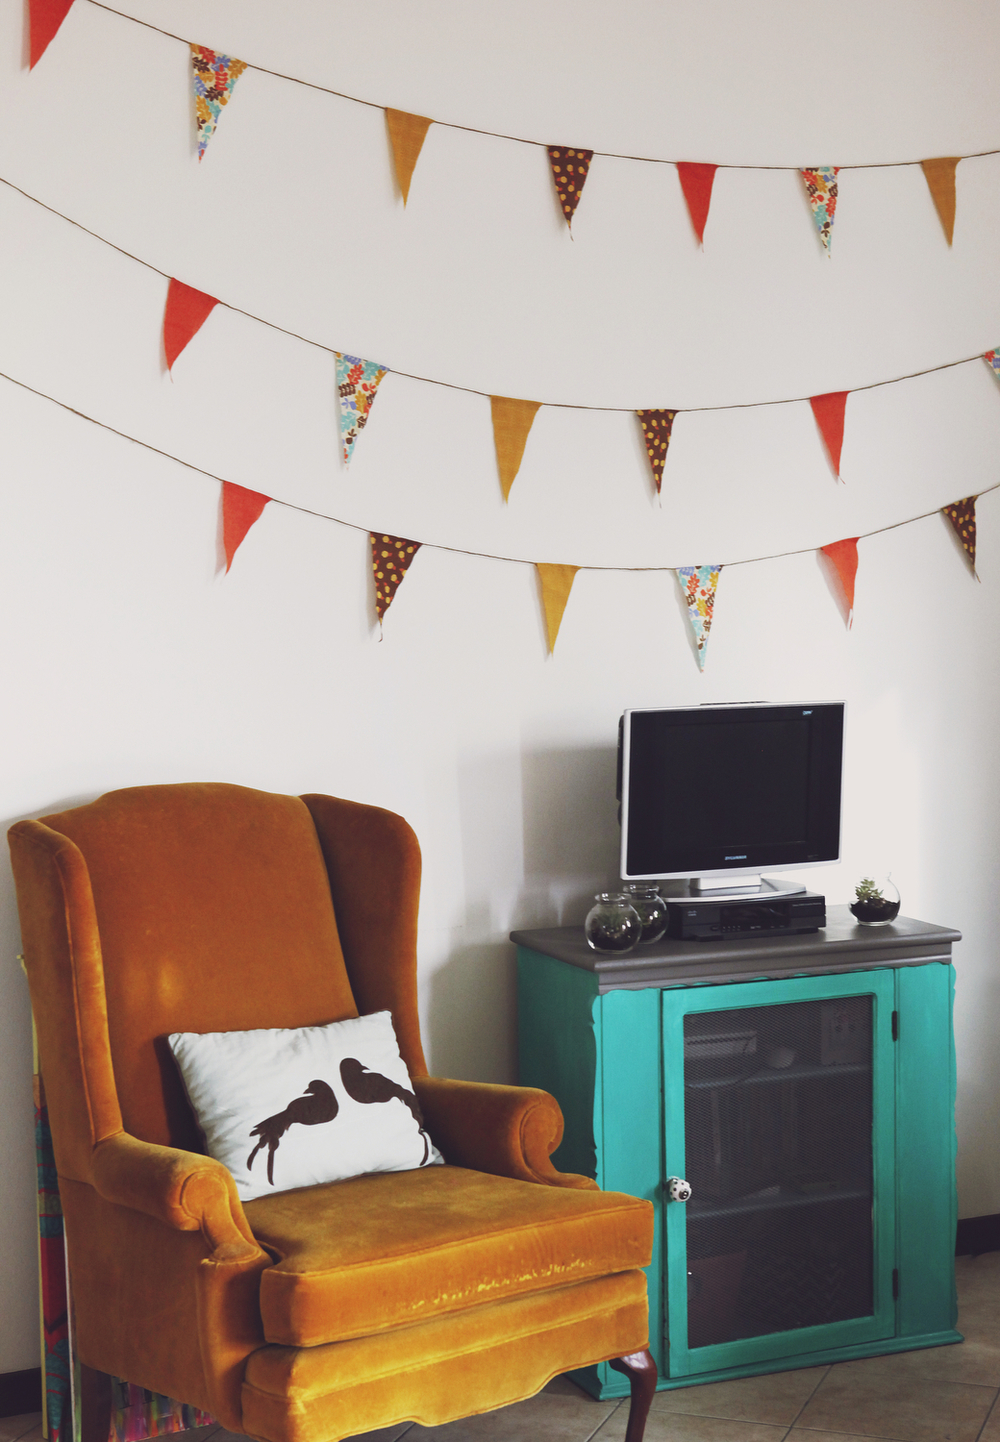 Last-minute decoration ideas: Fall pennant garland | Freckle & Fair